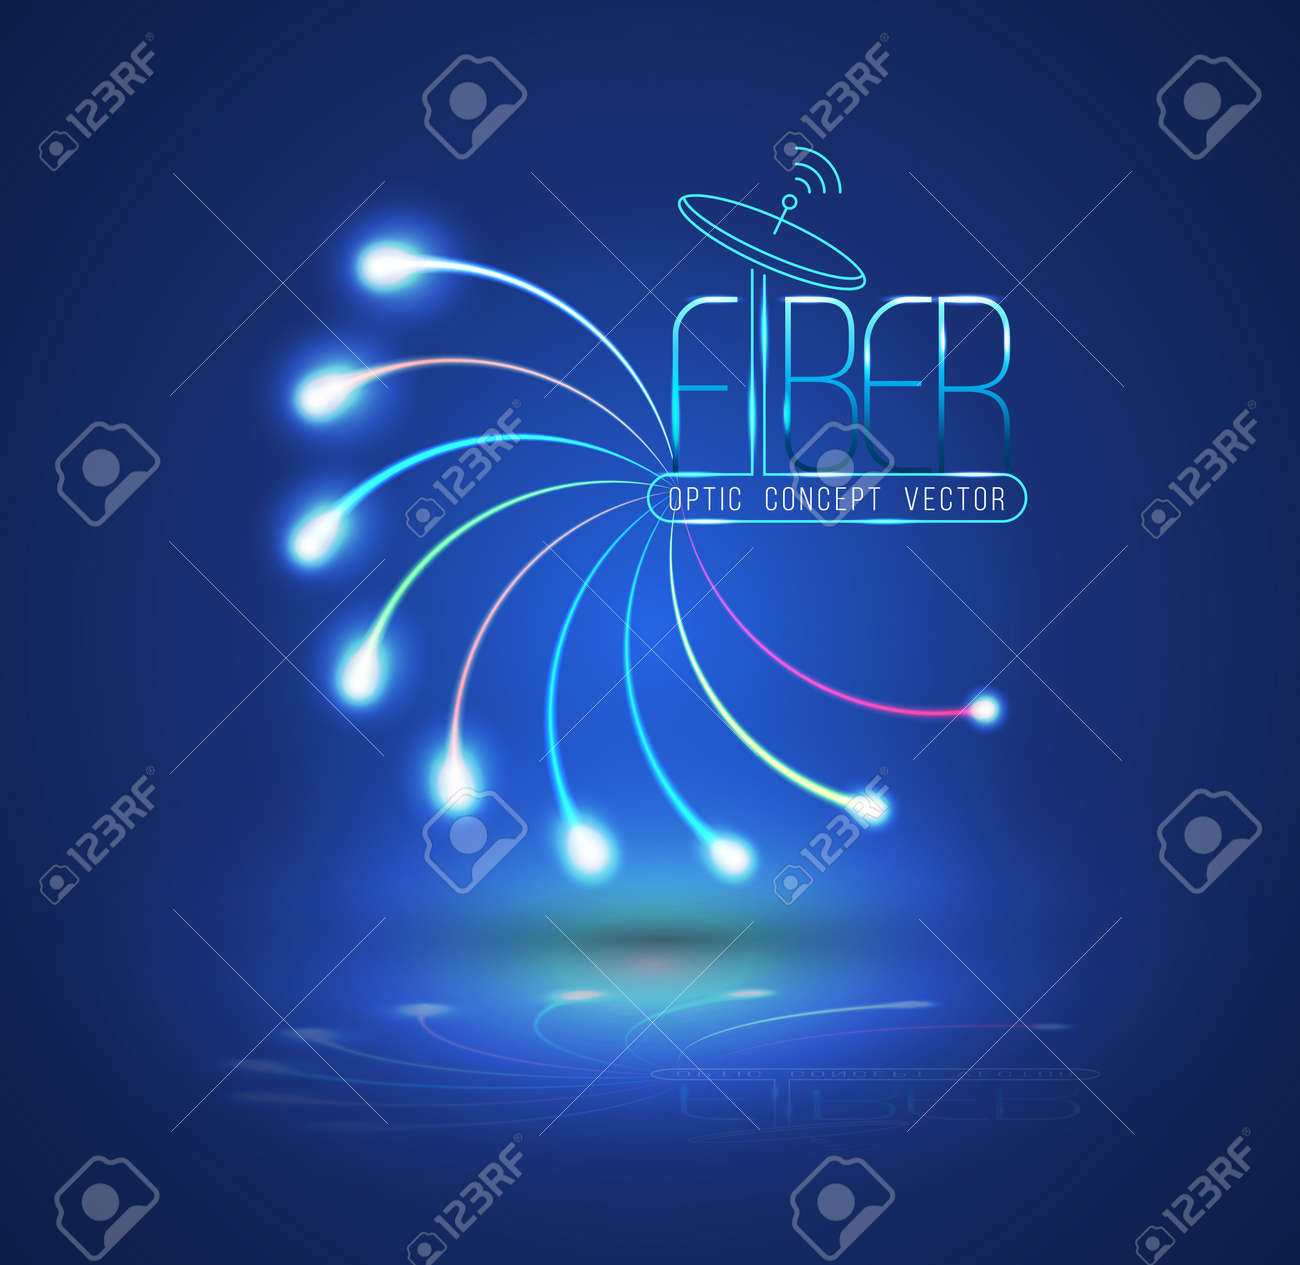 Abstract Light and line. Vector illustration. Can use for finer optic concept advertising. Fiber optic connection, business communication, network technology, can use for brochure and infographic - 41723704